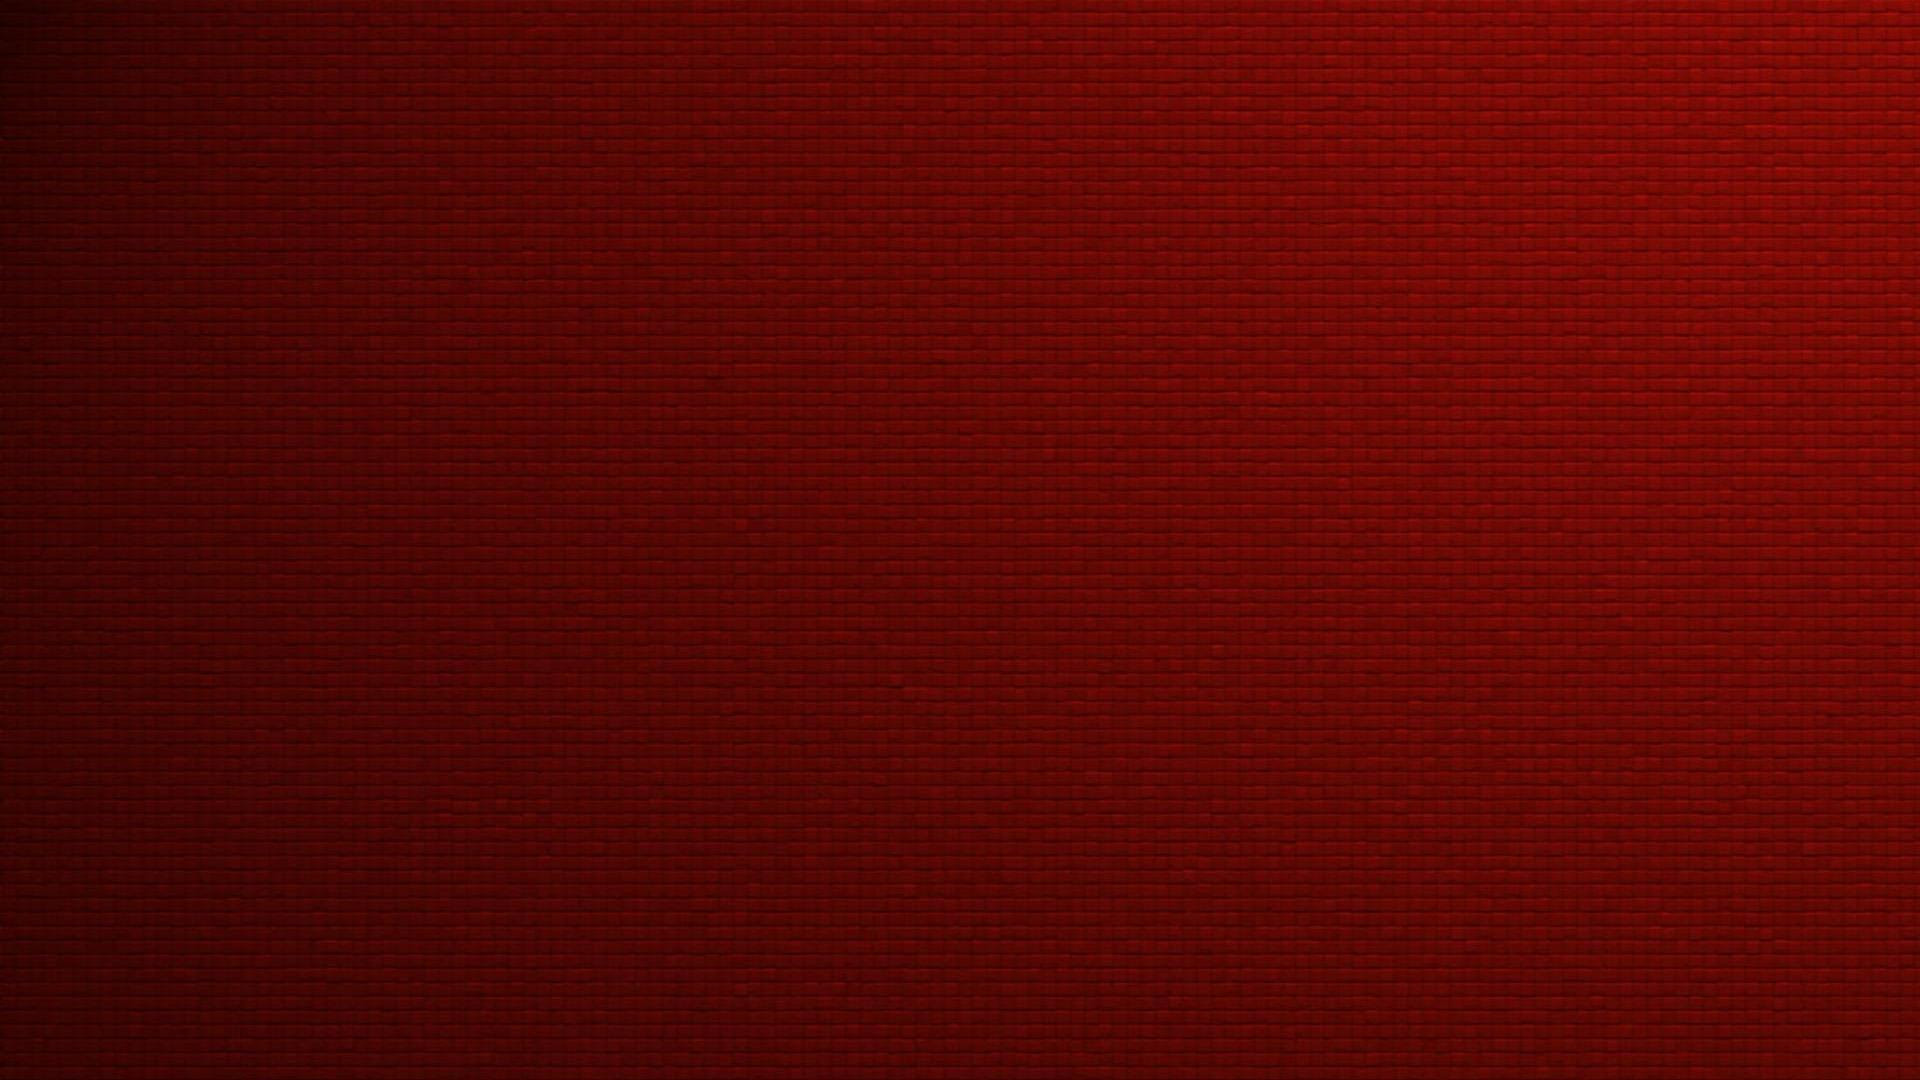 Red HD Wallpapers 1080p - WallpaperSafari